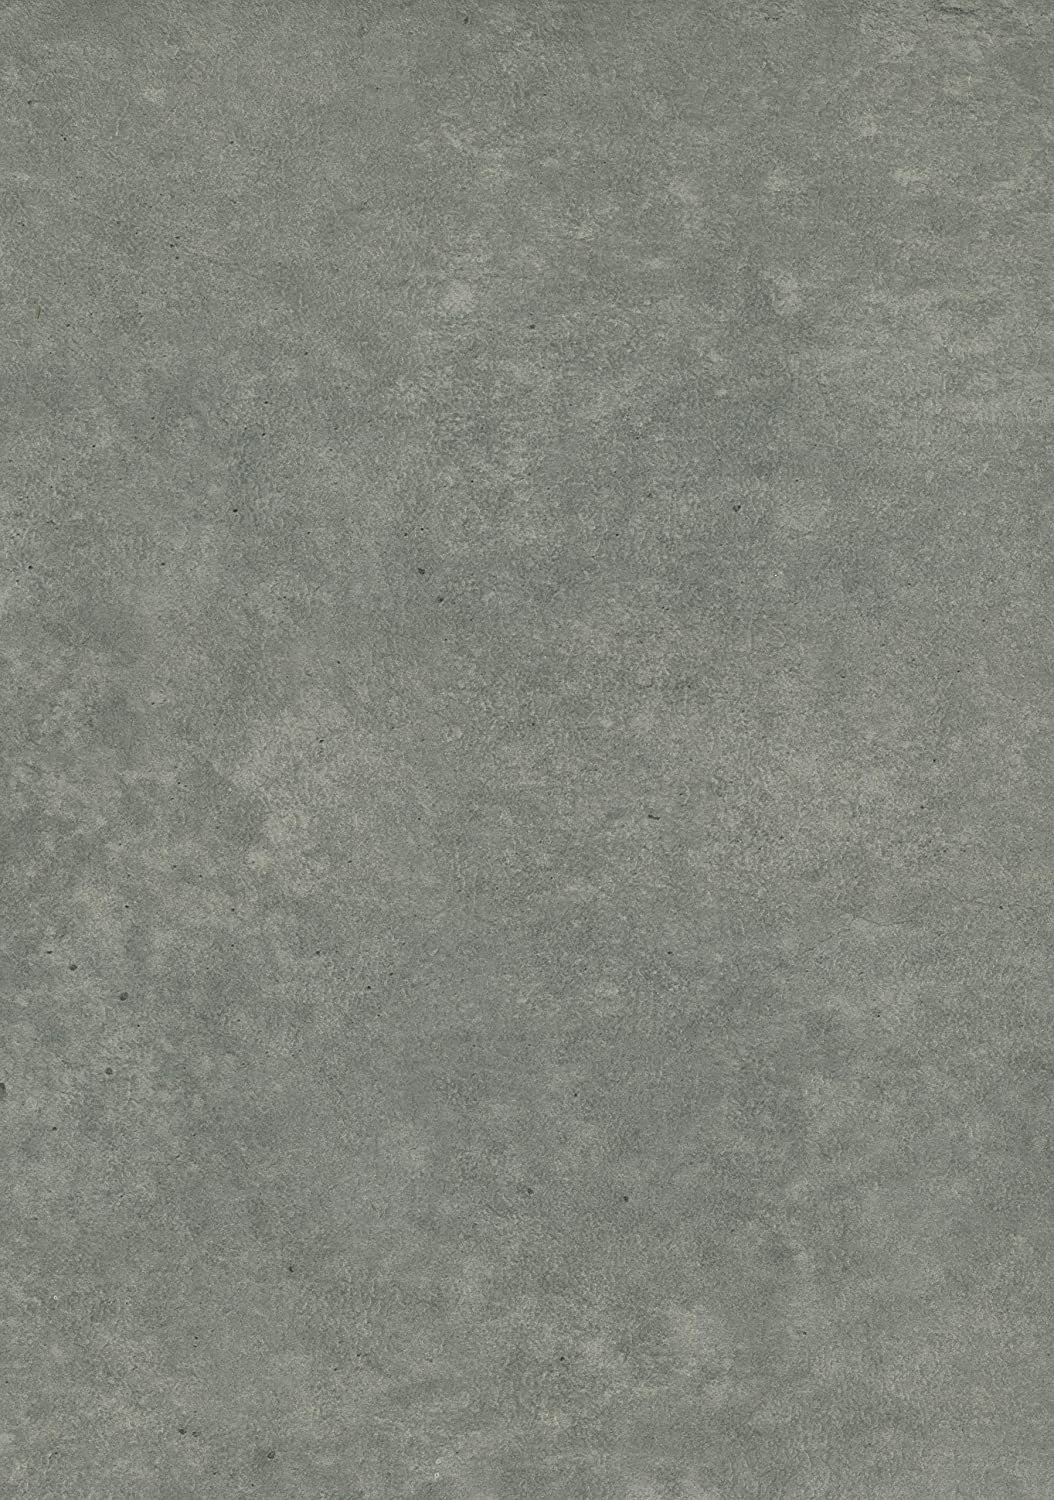 """Gray Peel and Stick Wallpaper – Extra Wide & Thick - 3D Adhesive Grey Cement Wallpaper Faux Textured Look – Removable Wall Paper, Peel and Stick Backsplash - Concrete Stone Wallpaper - 23.6""""x118"""""""